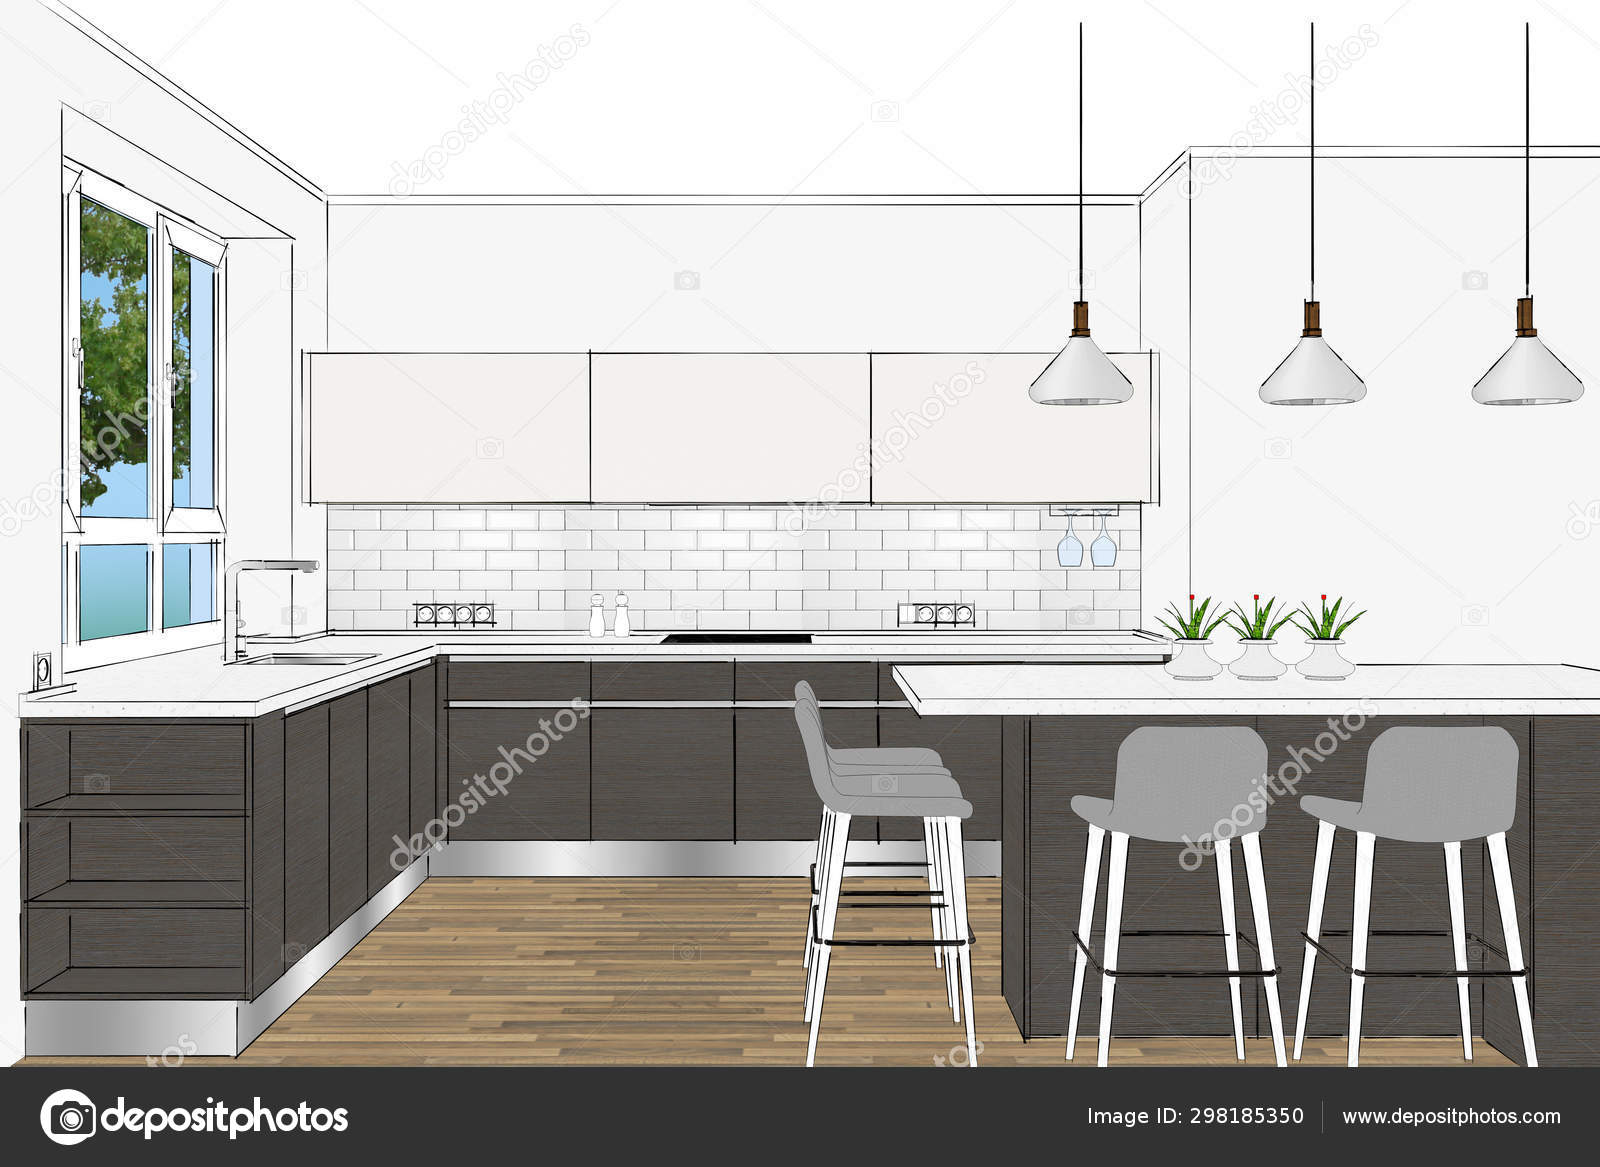 Rendering Modern Scandinavian Kitchen Furniture Design Light Interior Kitchen Island Stock Photo Image By C Richard Salamander 298185350